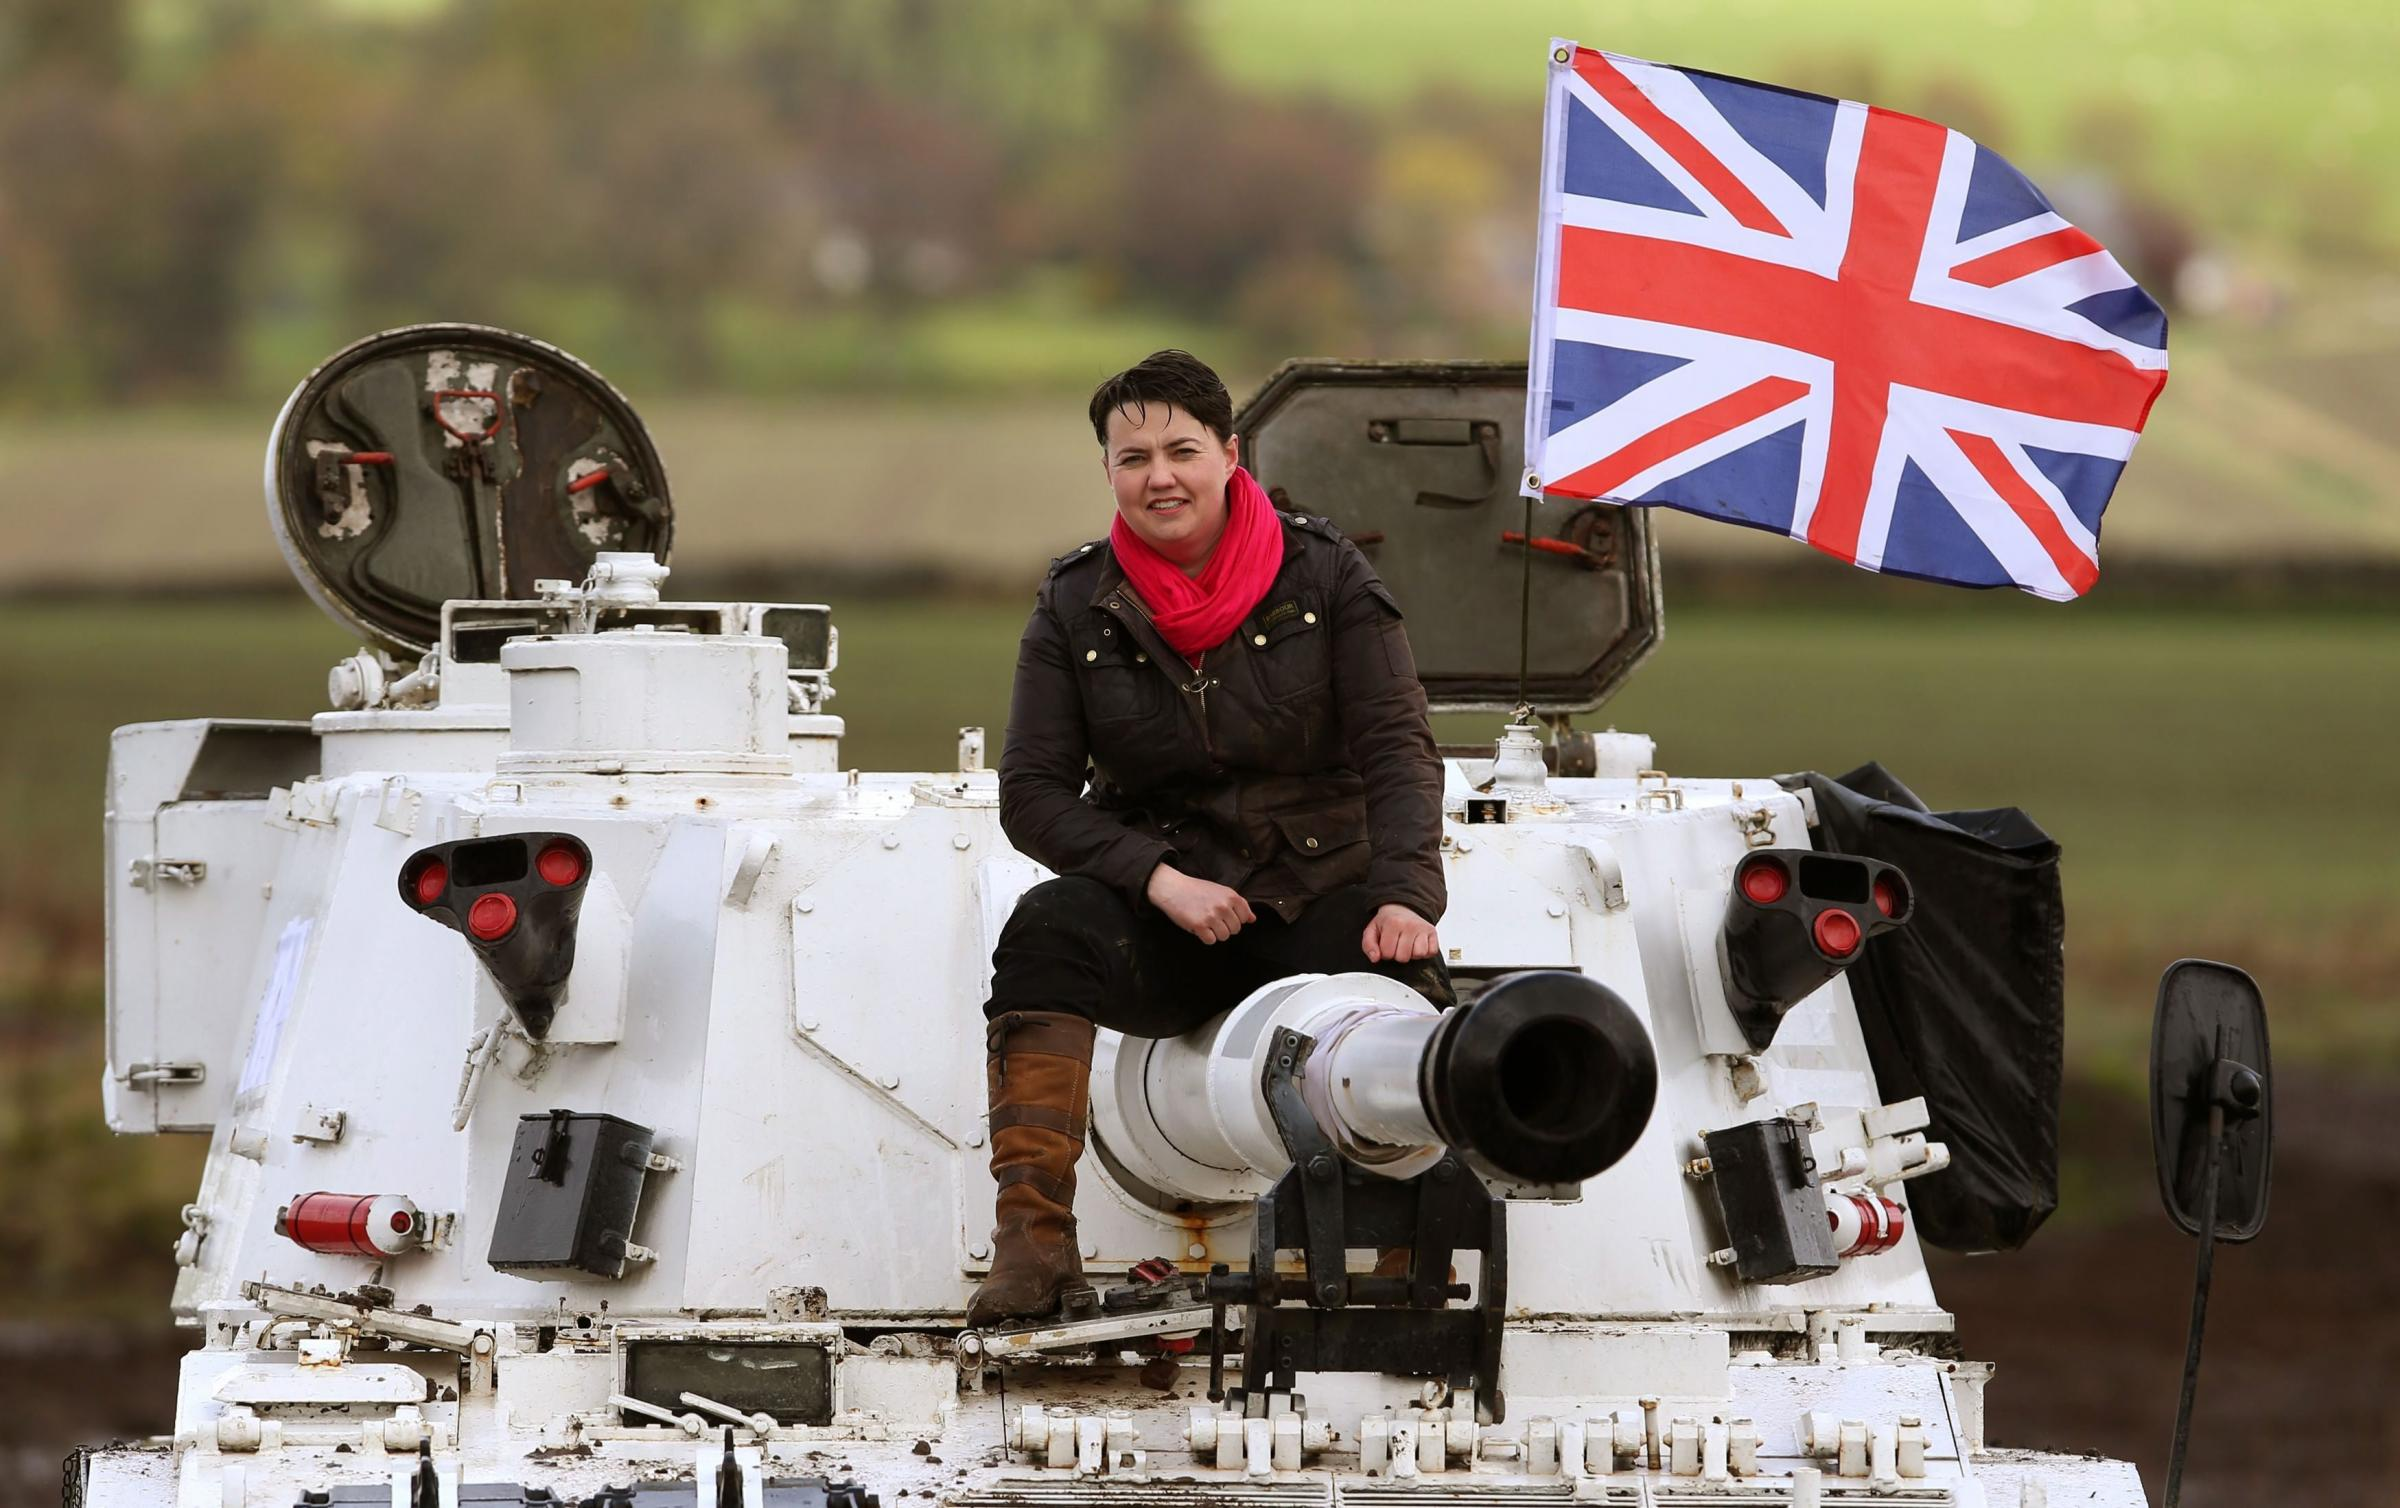 Ruth Davidson has really shown the Nats, with her cheery photo ops and propensity for sitting on tanks. Photograph: PA